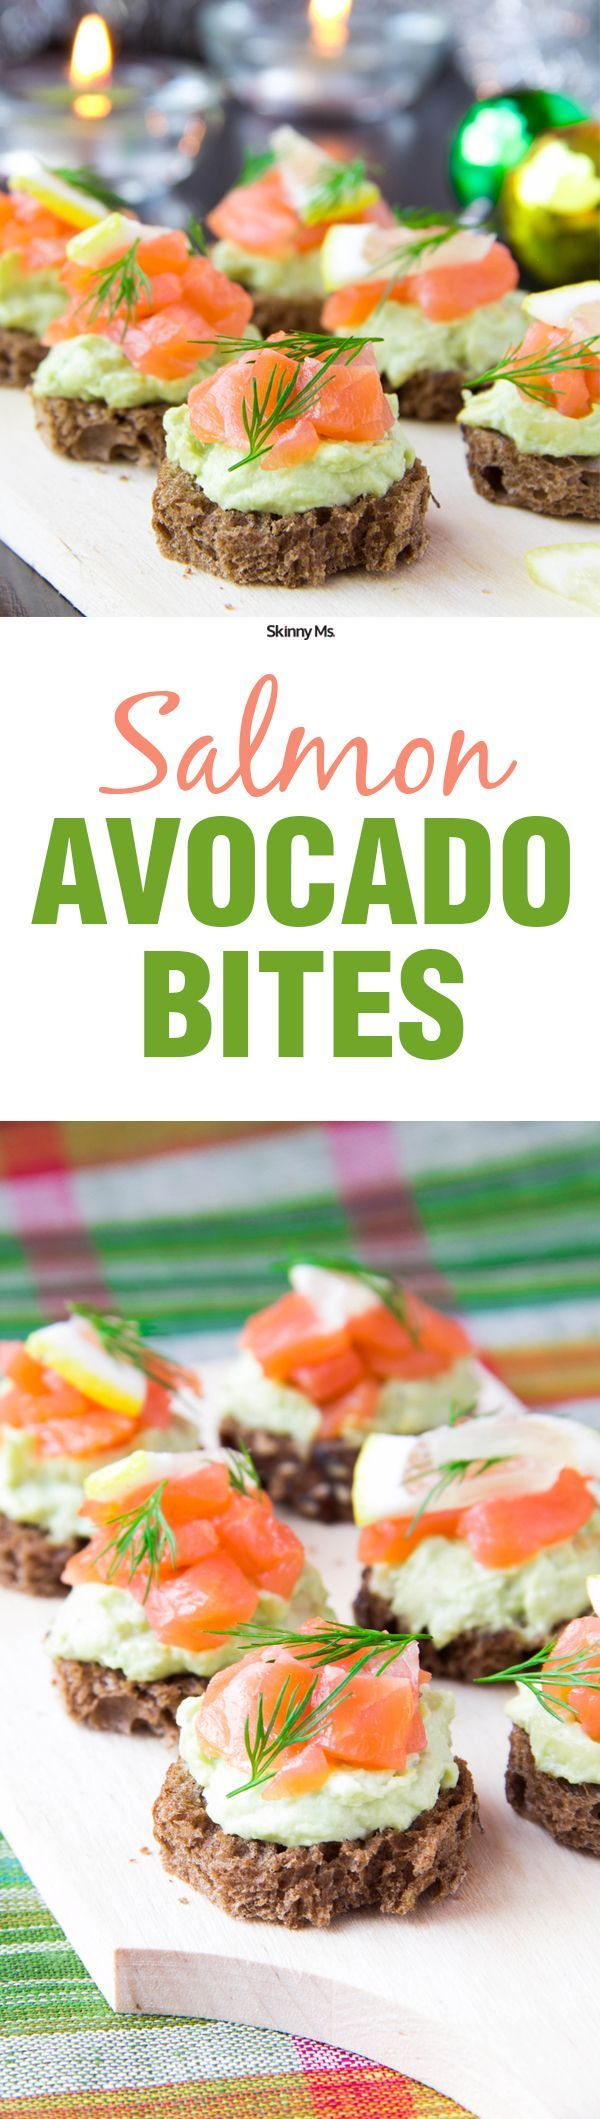 These Salmon Avocado Bites are an awesome superfood appetizer!